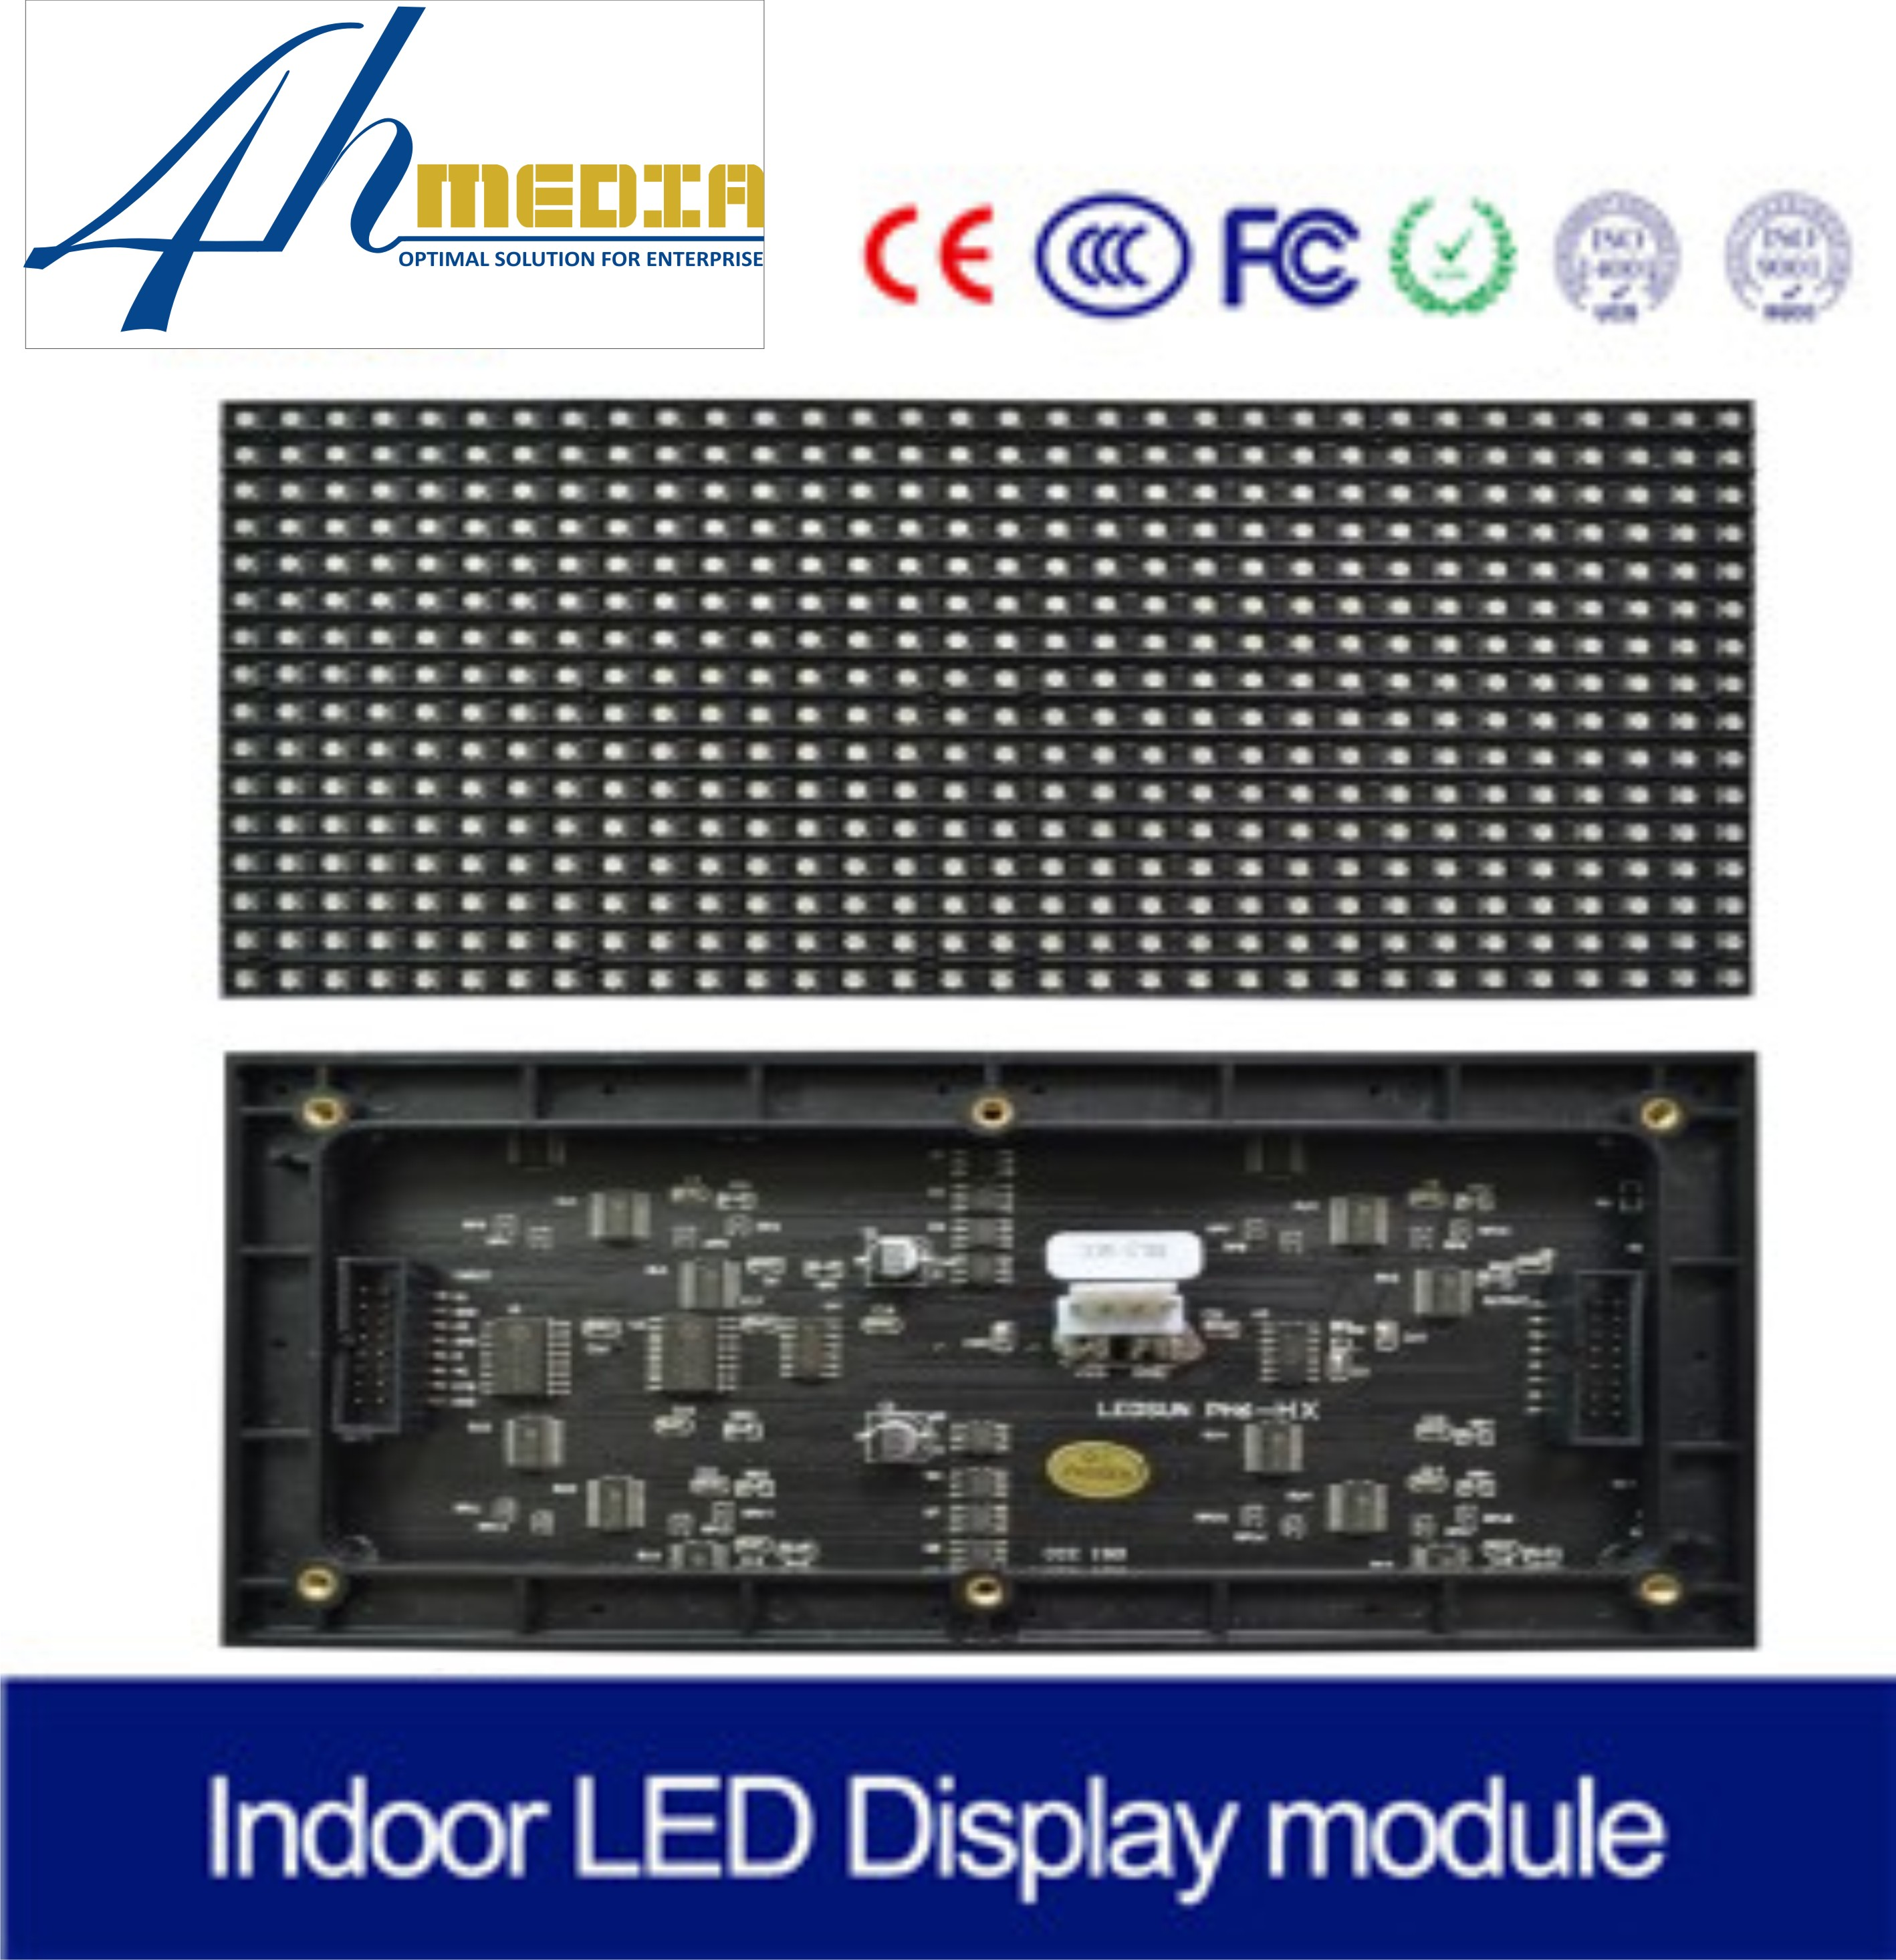 Module Led Indoor P4 size:256mm x 128mm,Module Led Indoor P4 size:256mm x 128mm